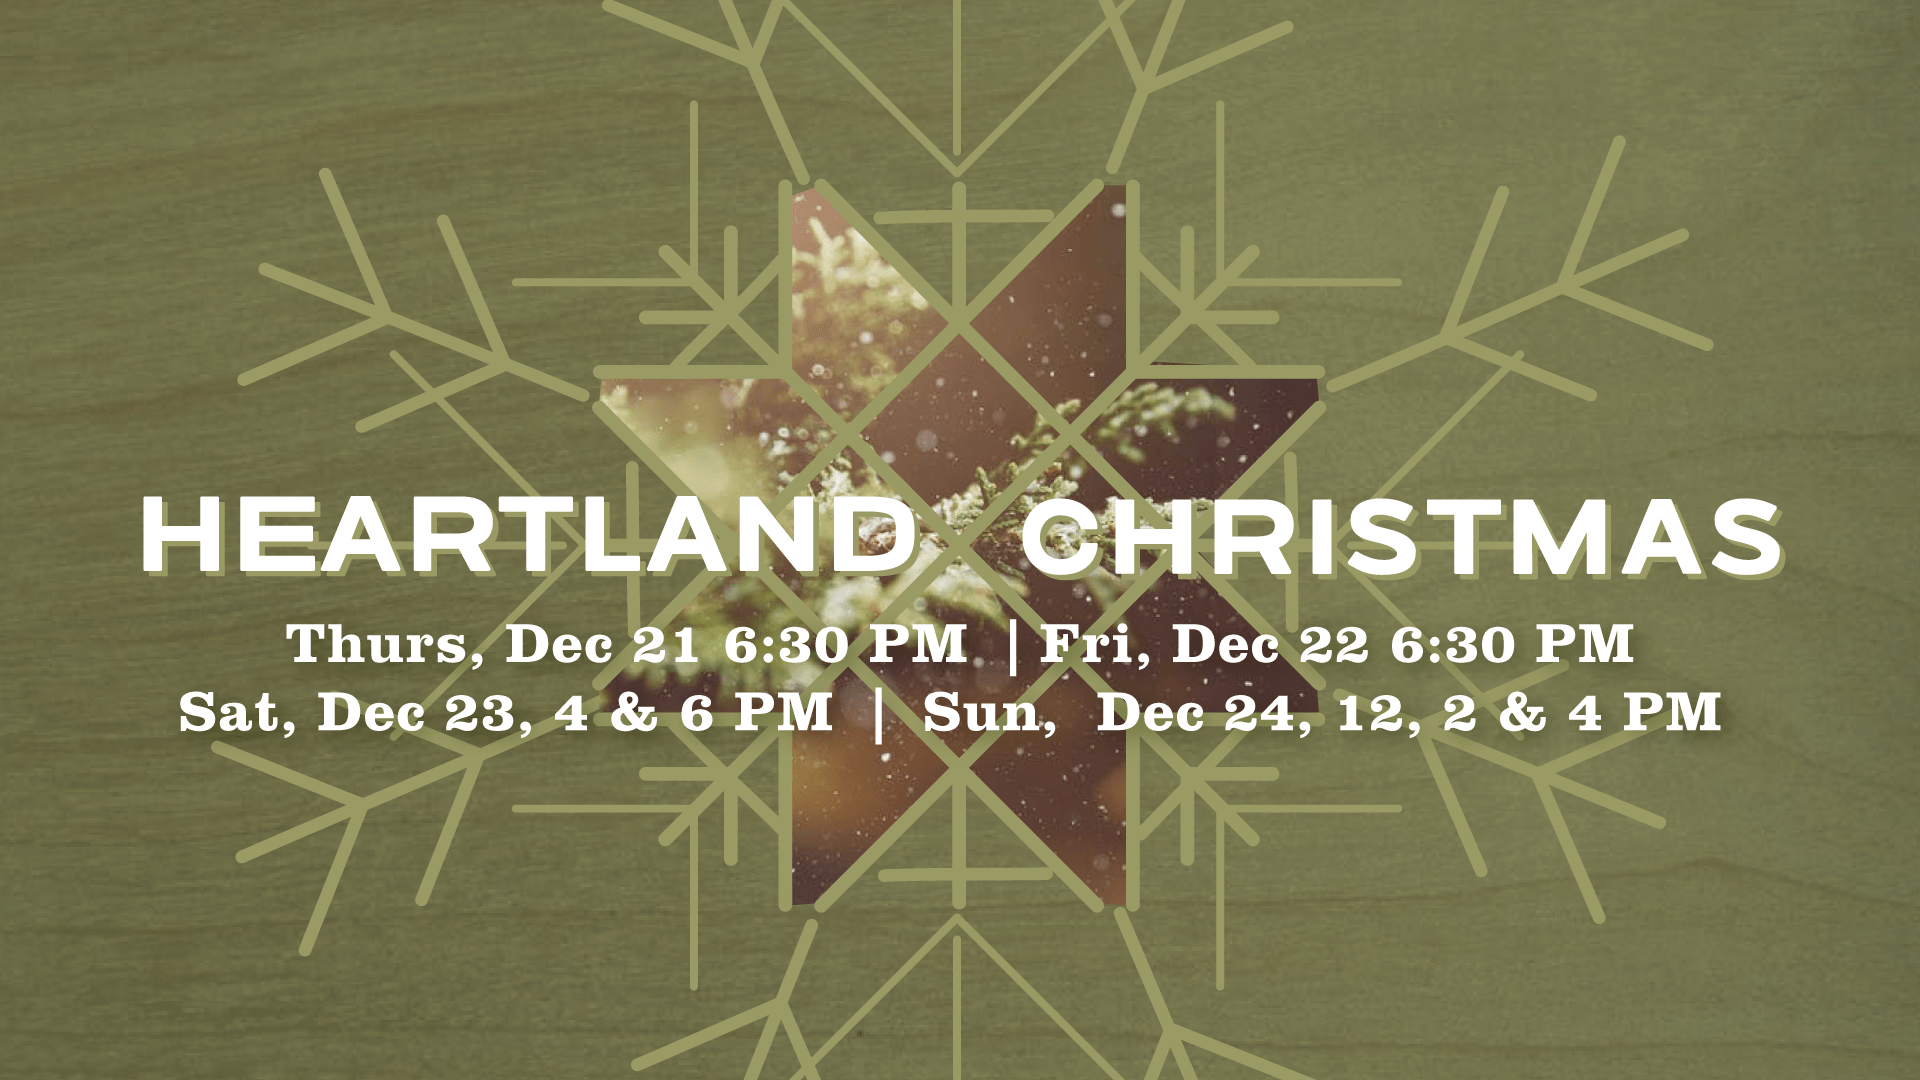 Heartland Christmas Services 2017